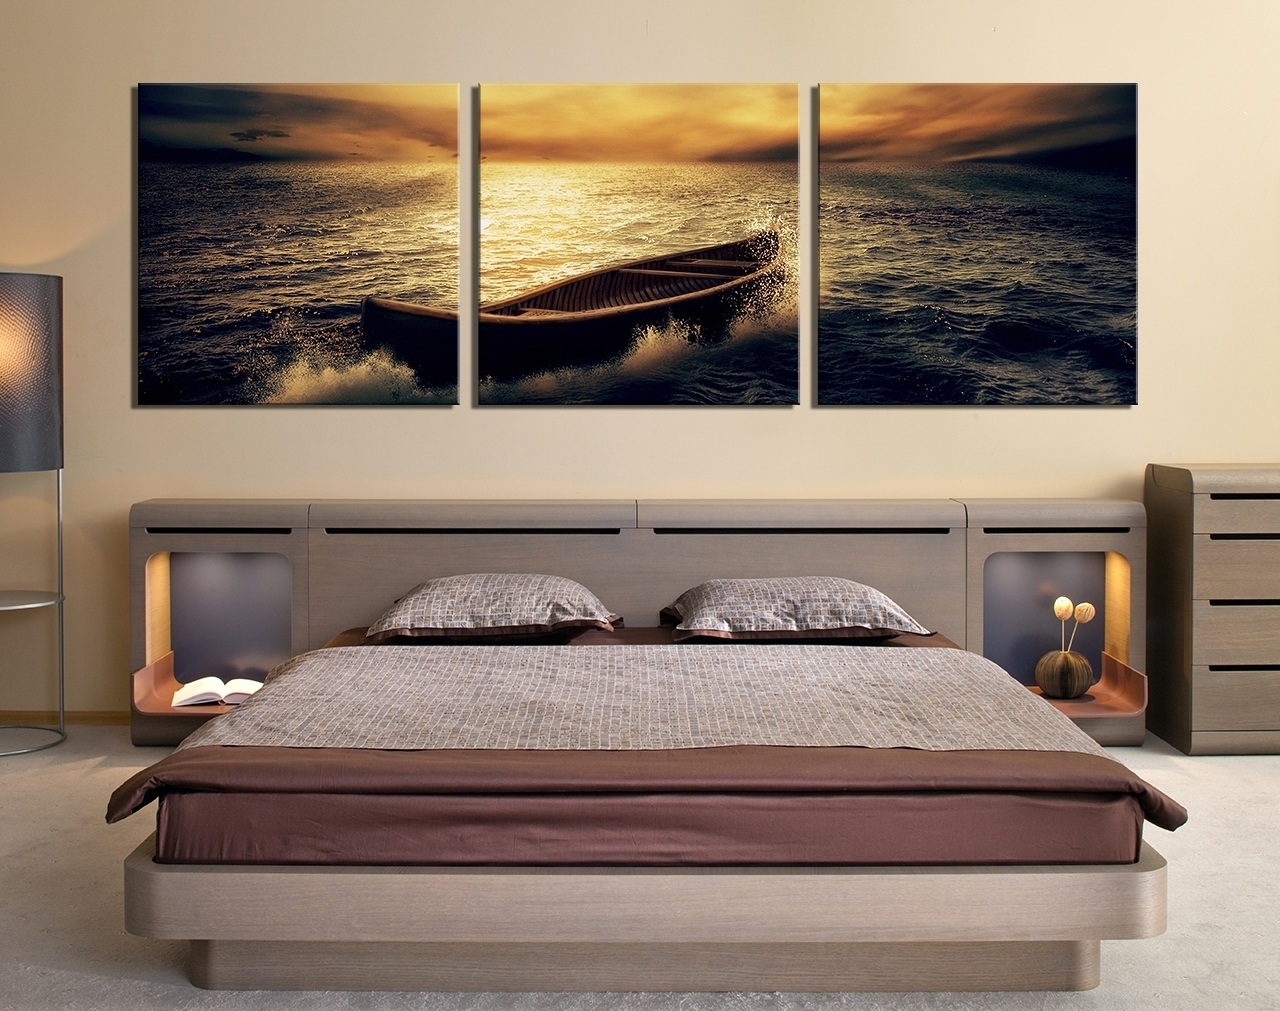 Luxury Canvas Wall Art For Bedroom | Wall Decorations Intended For 2017 Ocean Wall Art (Gallery 18 of 20)